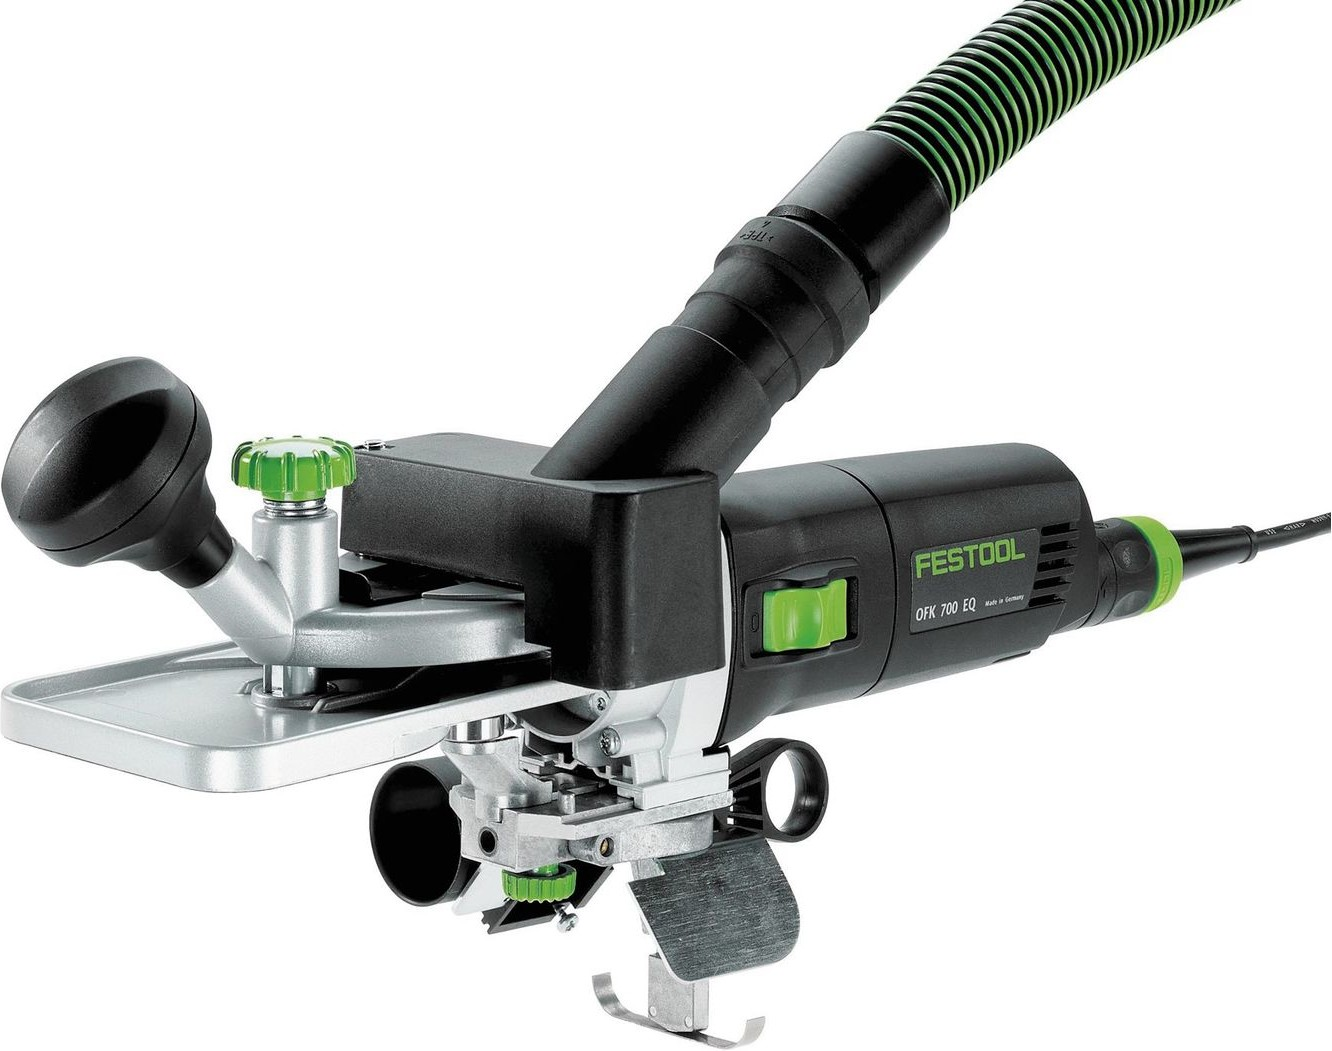 Reunajyrsin Festool OFK 700 EQ-Plus